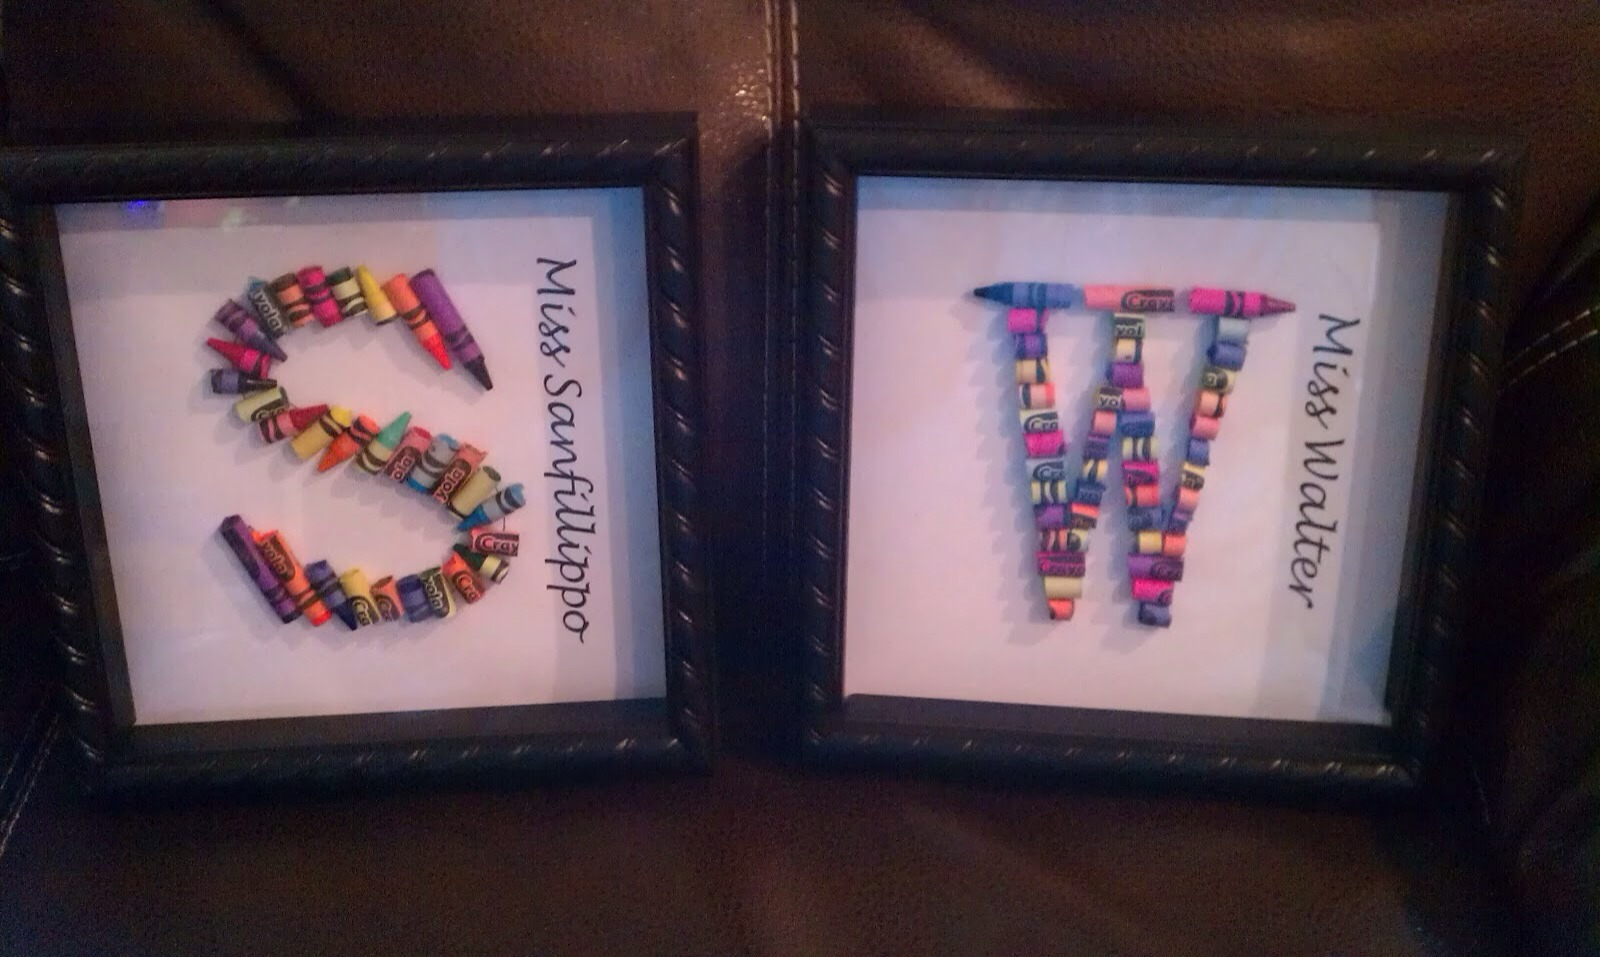 ... letter with tacky glue-> Cover crayons with tacky glue also -> Start